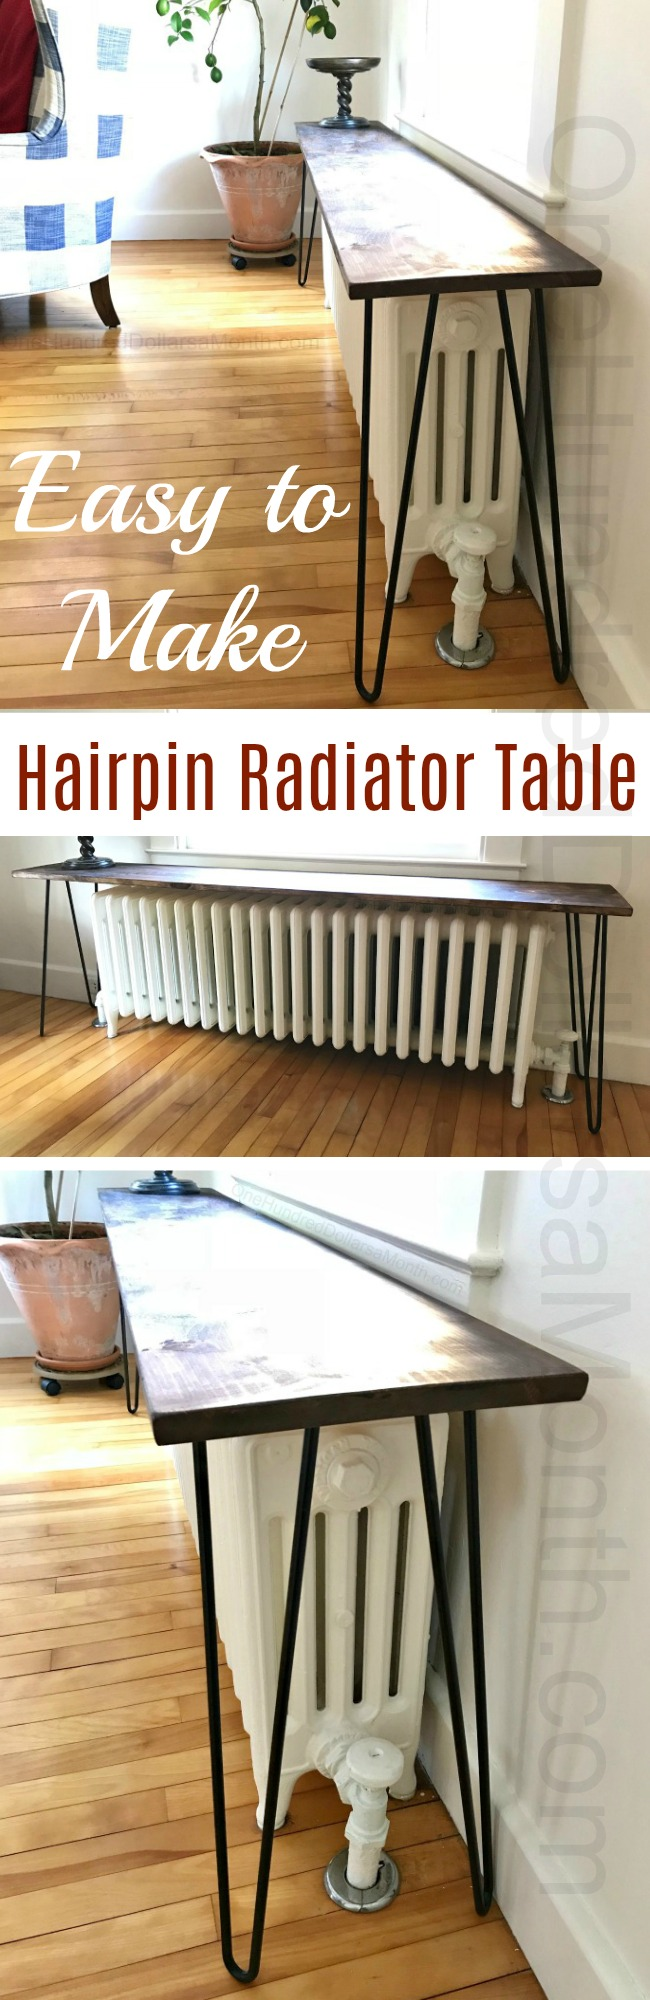 DIY Hairpin Radiator Table